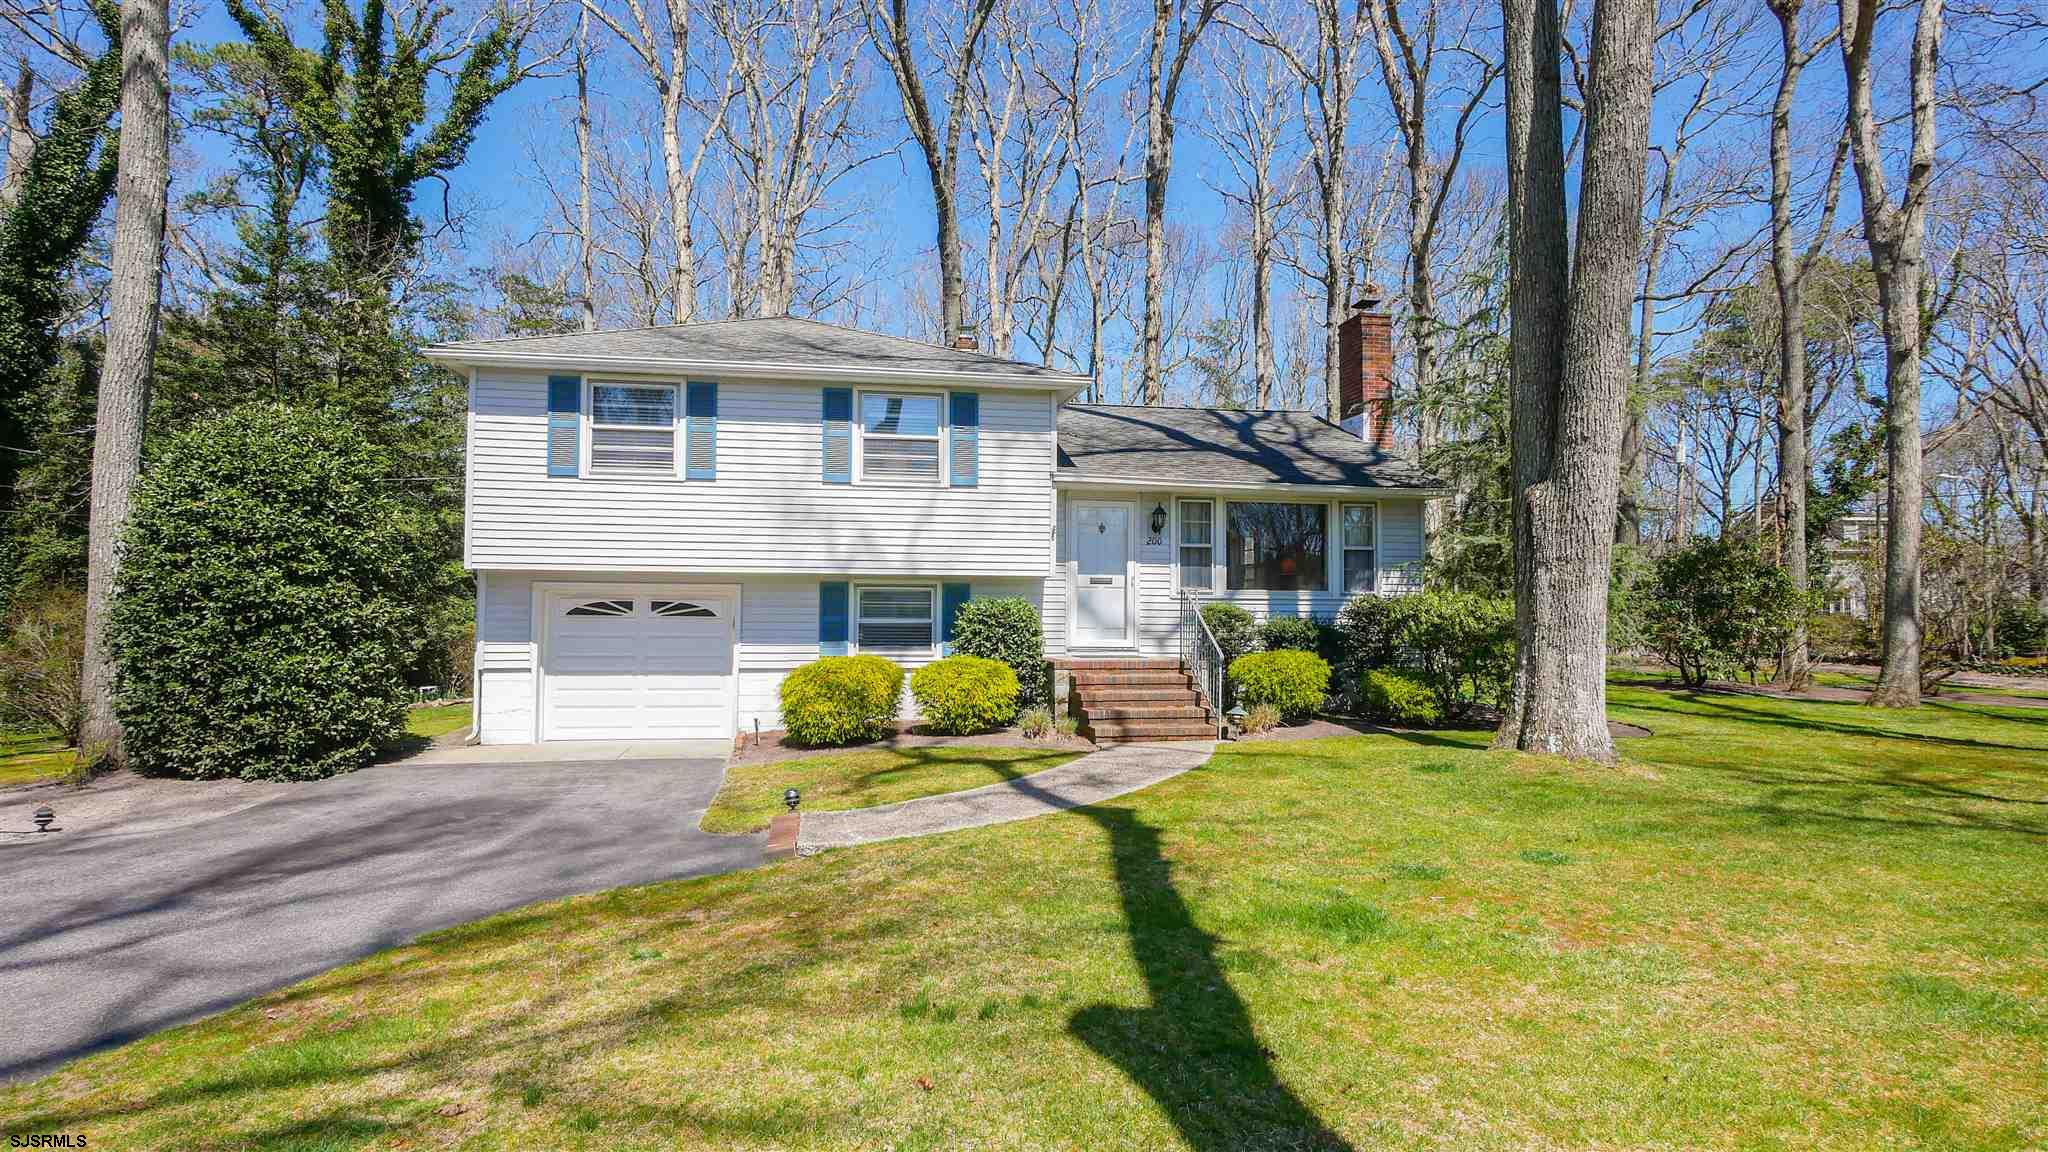 Peaceful and private setting on over one half an acre. This split level 3 bedroom, 1.5 bath home has